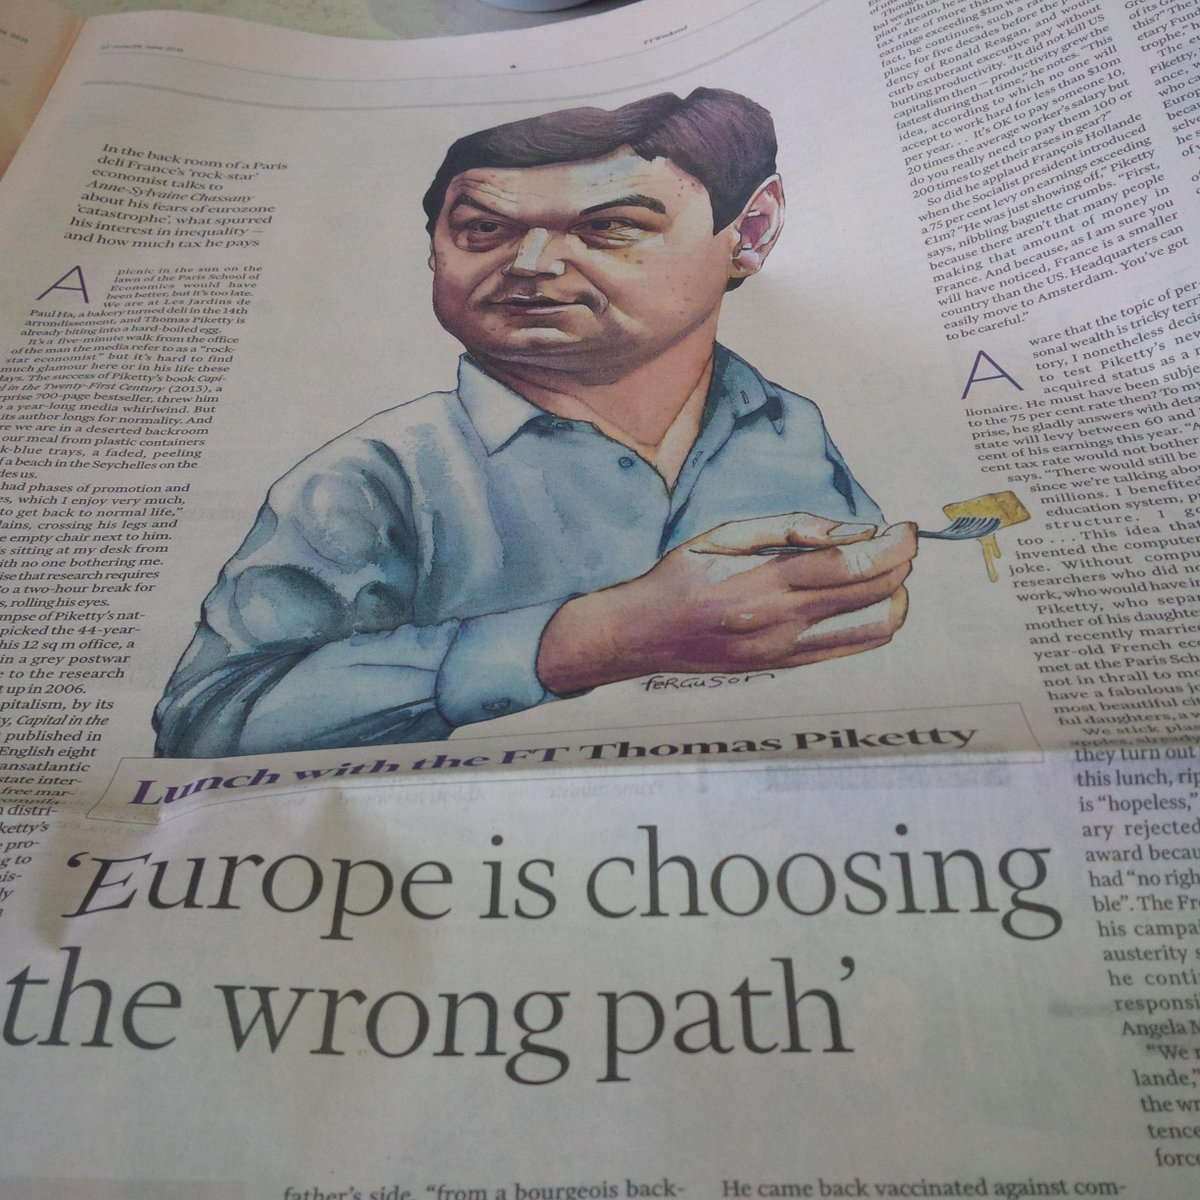 Thomas Piketty is 'comfortable' with 90% tax .. how sweet - let him pay 4 every1working 2 many hours 2 pay them! http://t.co/q2wxL8zzbr